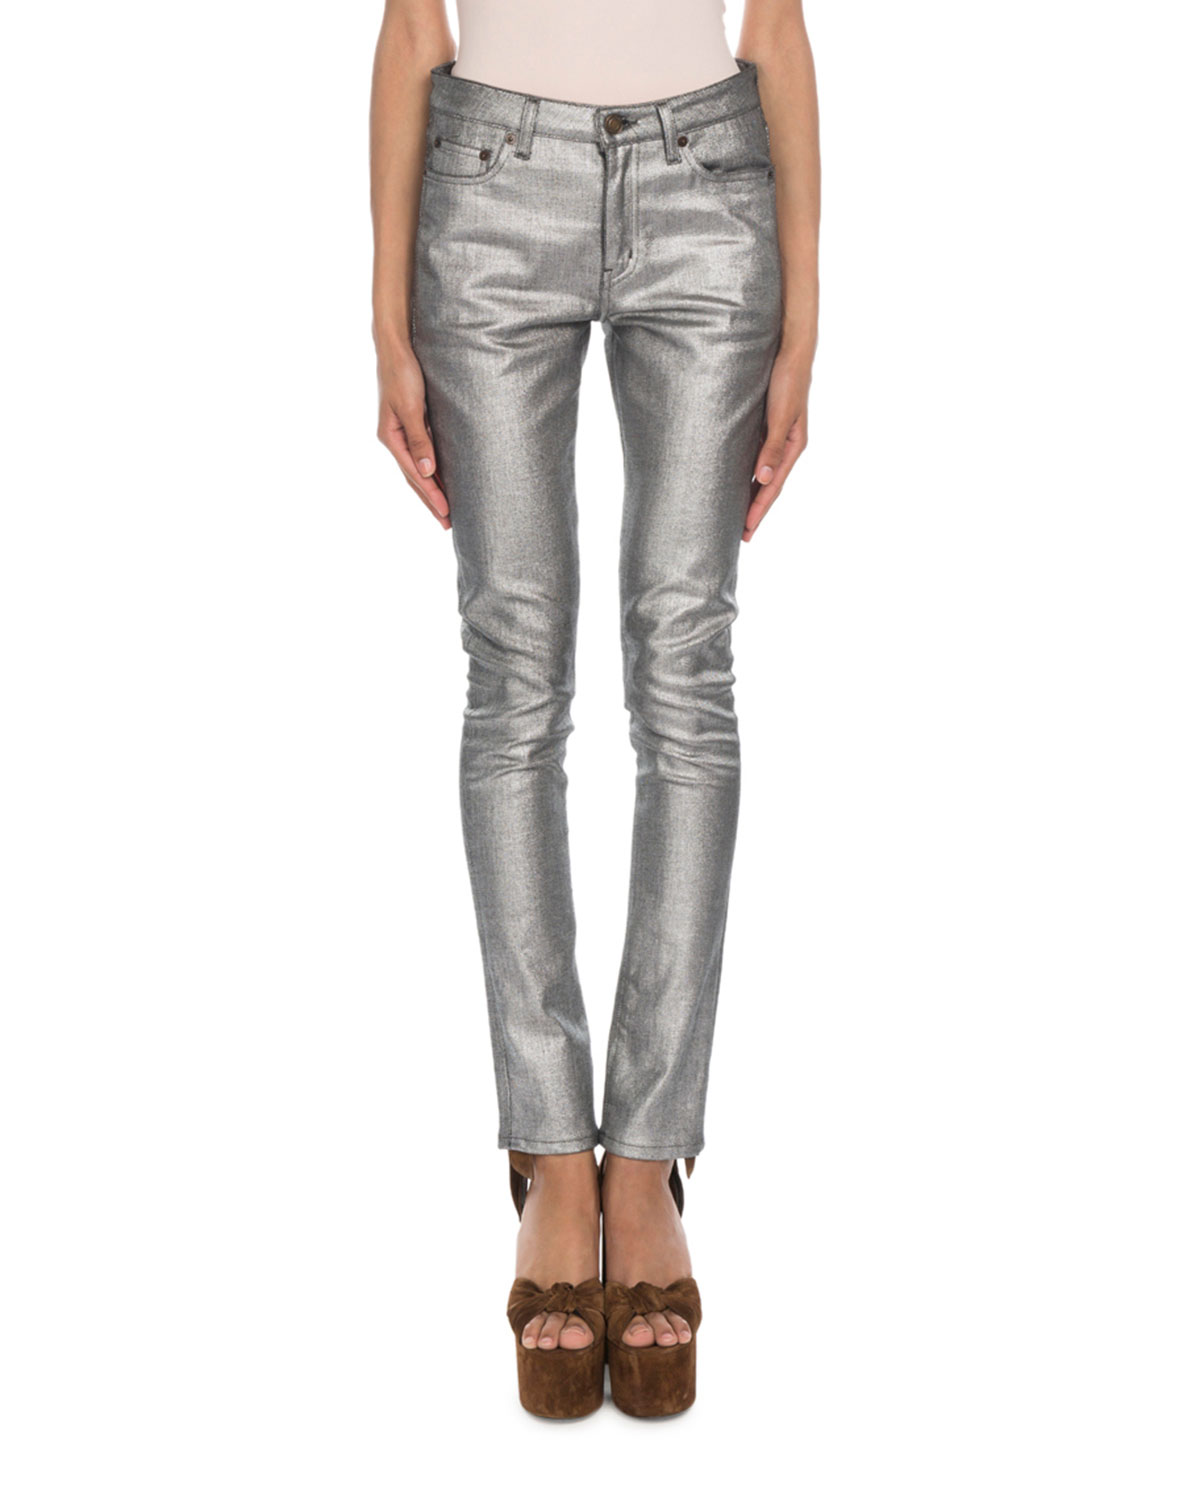 High-Rise Metallic Skinny Jeans in Silver